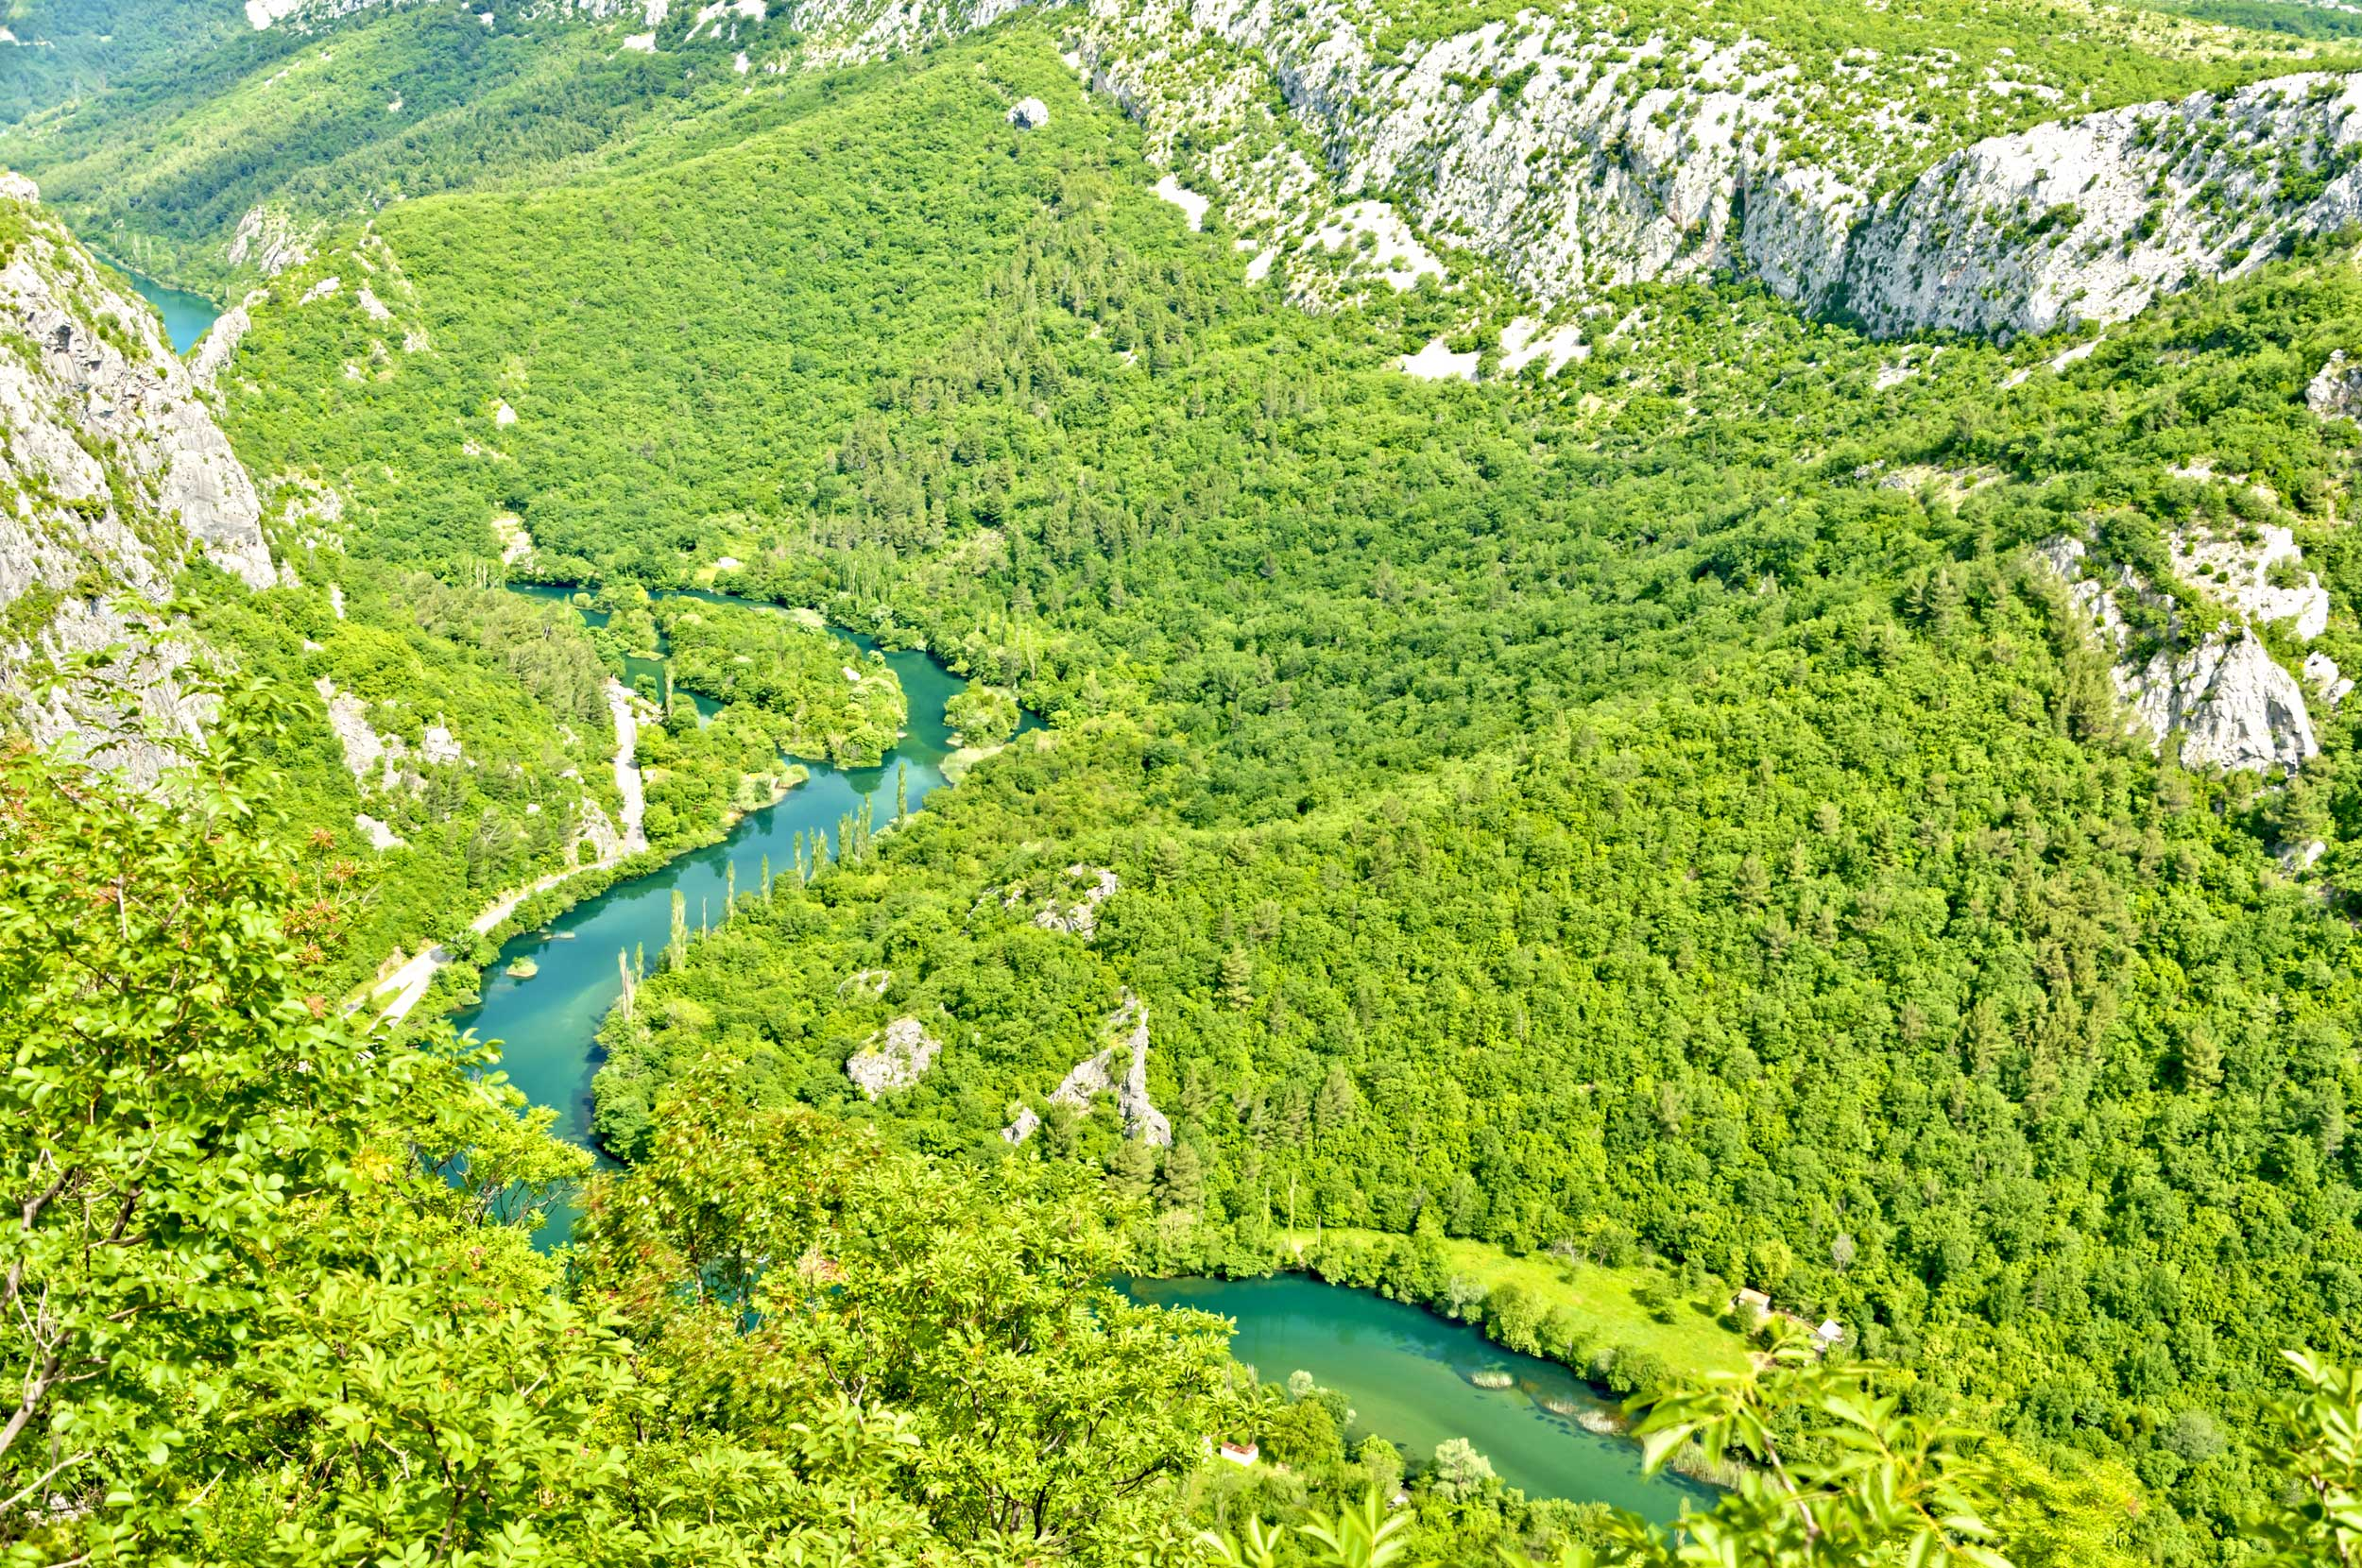 A river flowing through a lush green valley in Croatia